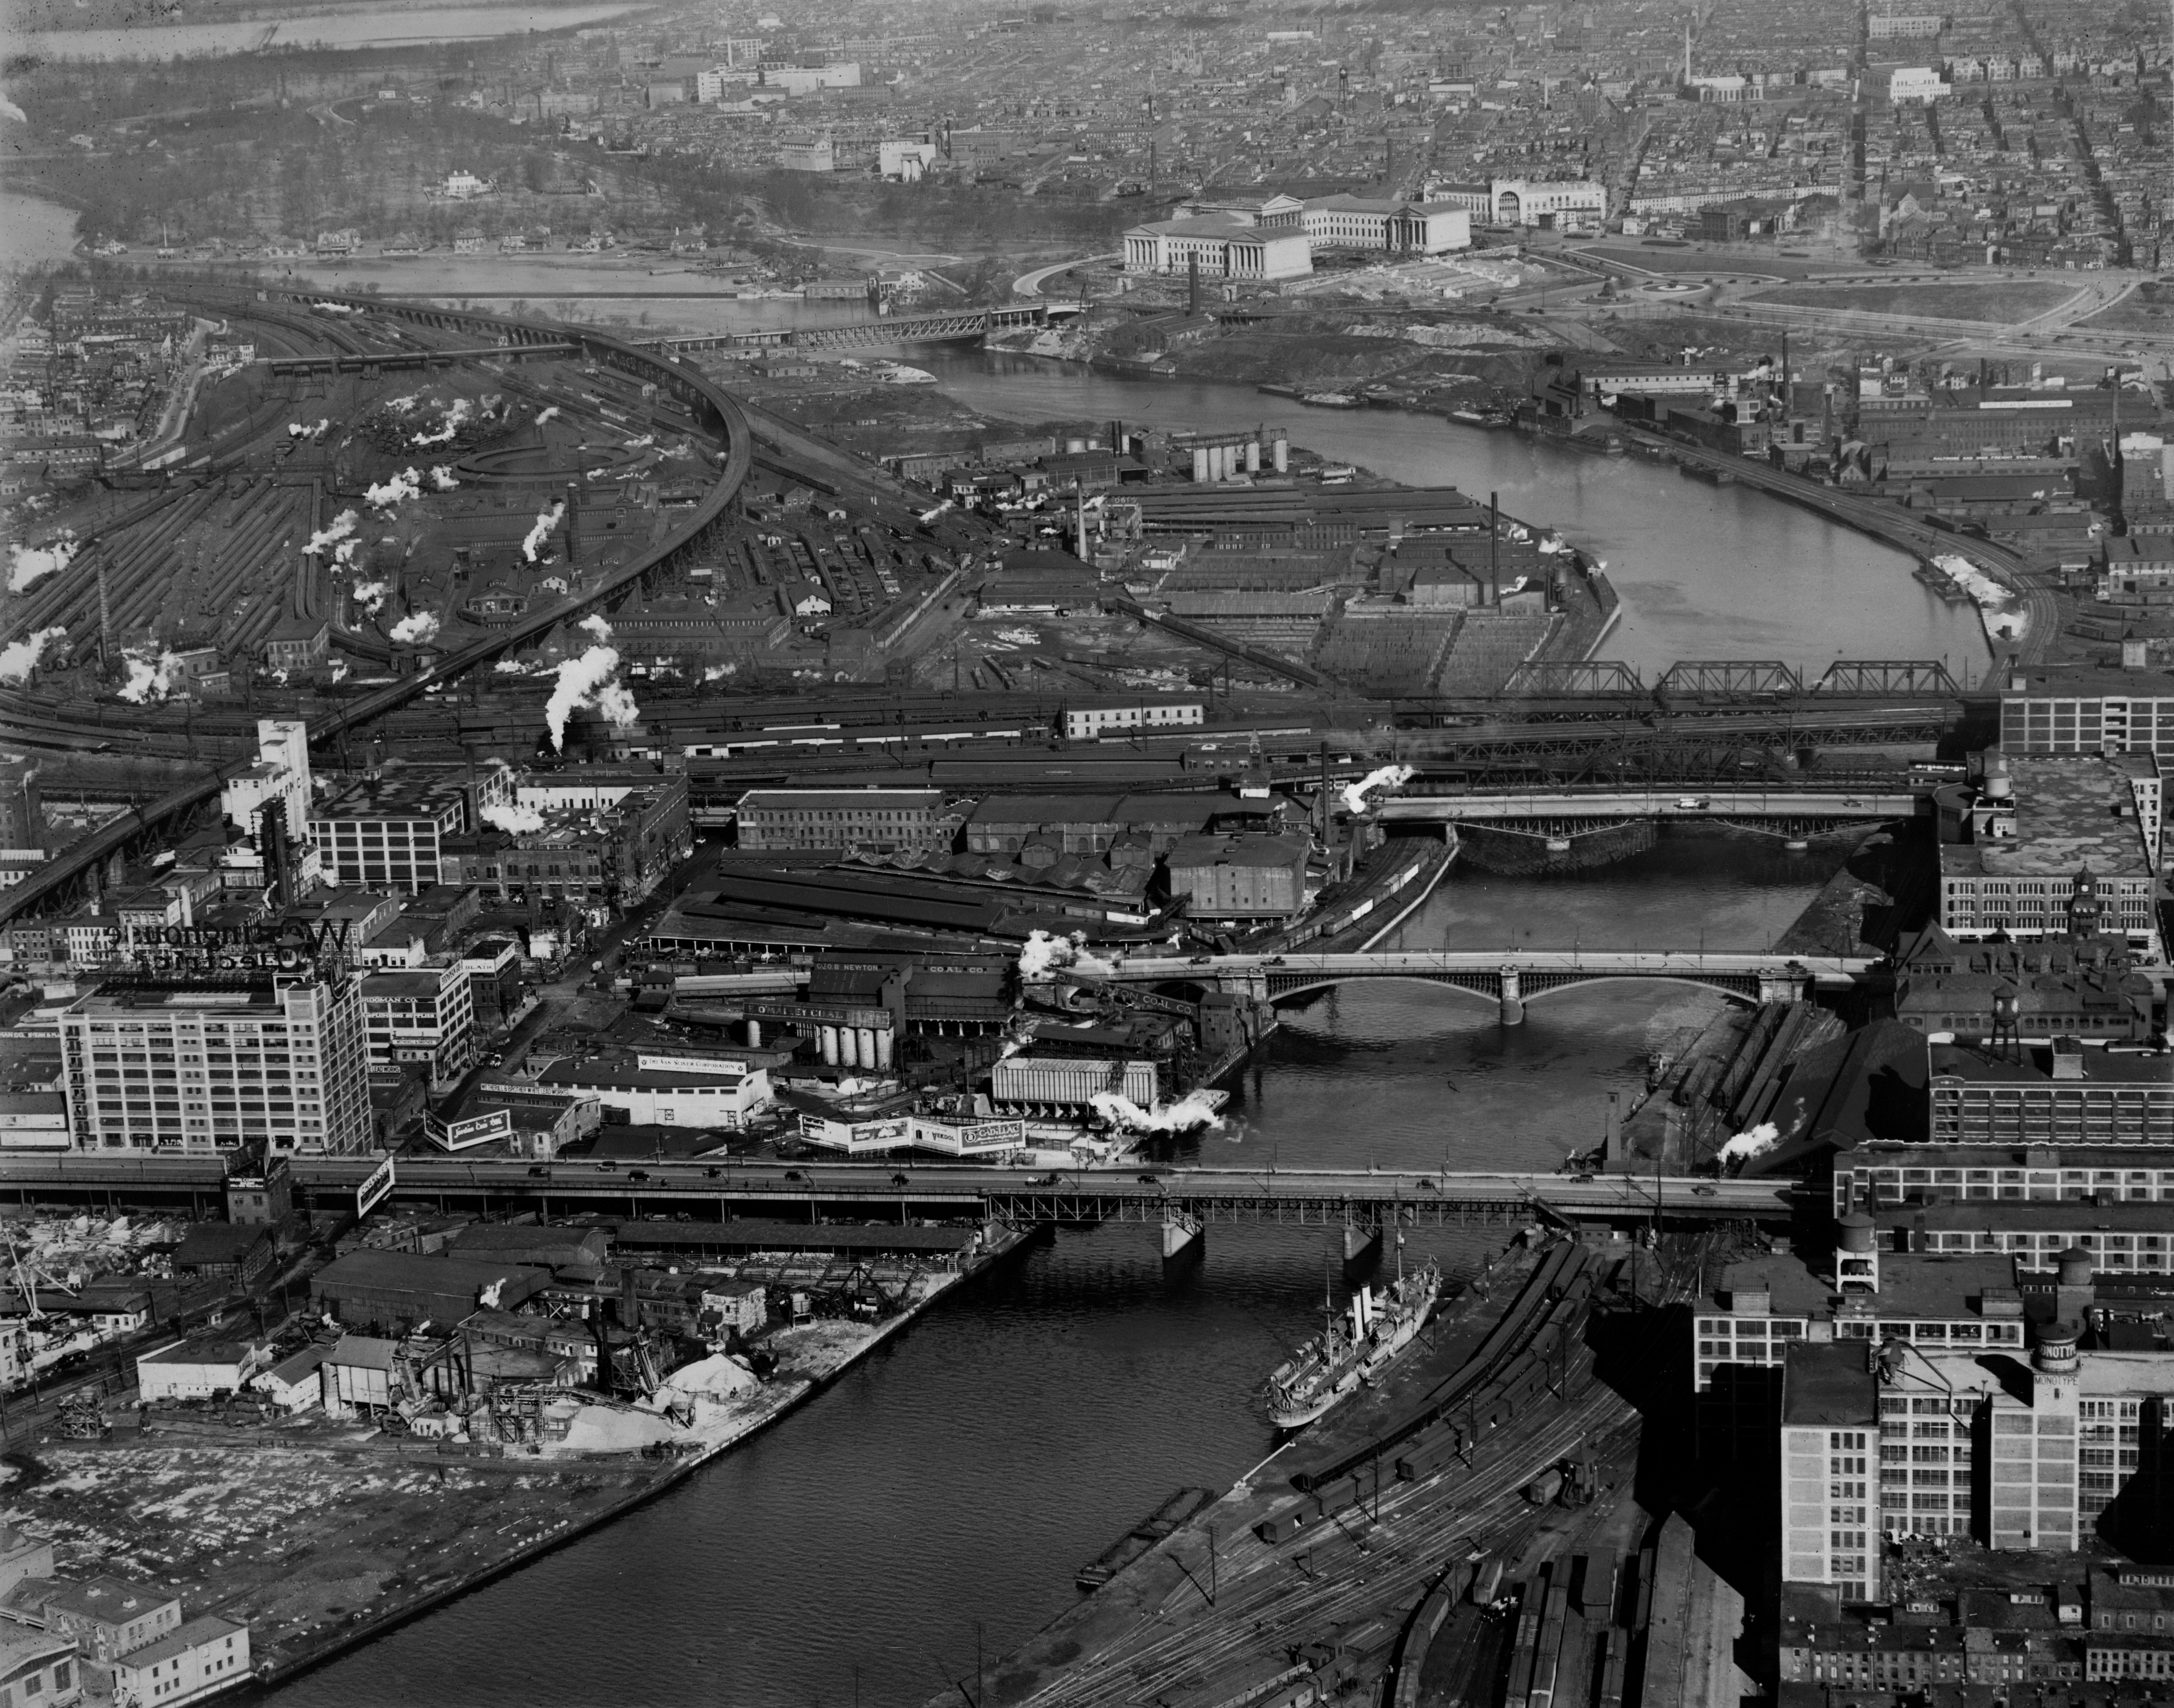 Schuylkill River from South Street, December 31, 1927. | (Image #7123) Aero Service Corp., courtesy of Aerial Viewpoint, Spring, TX